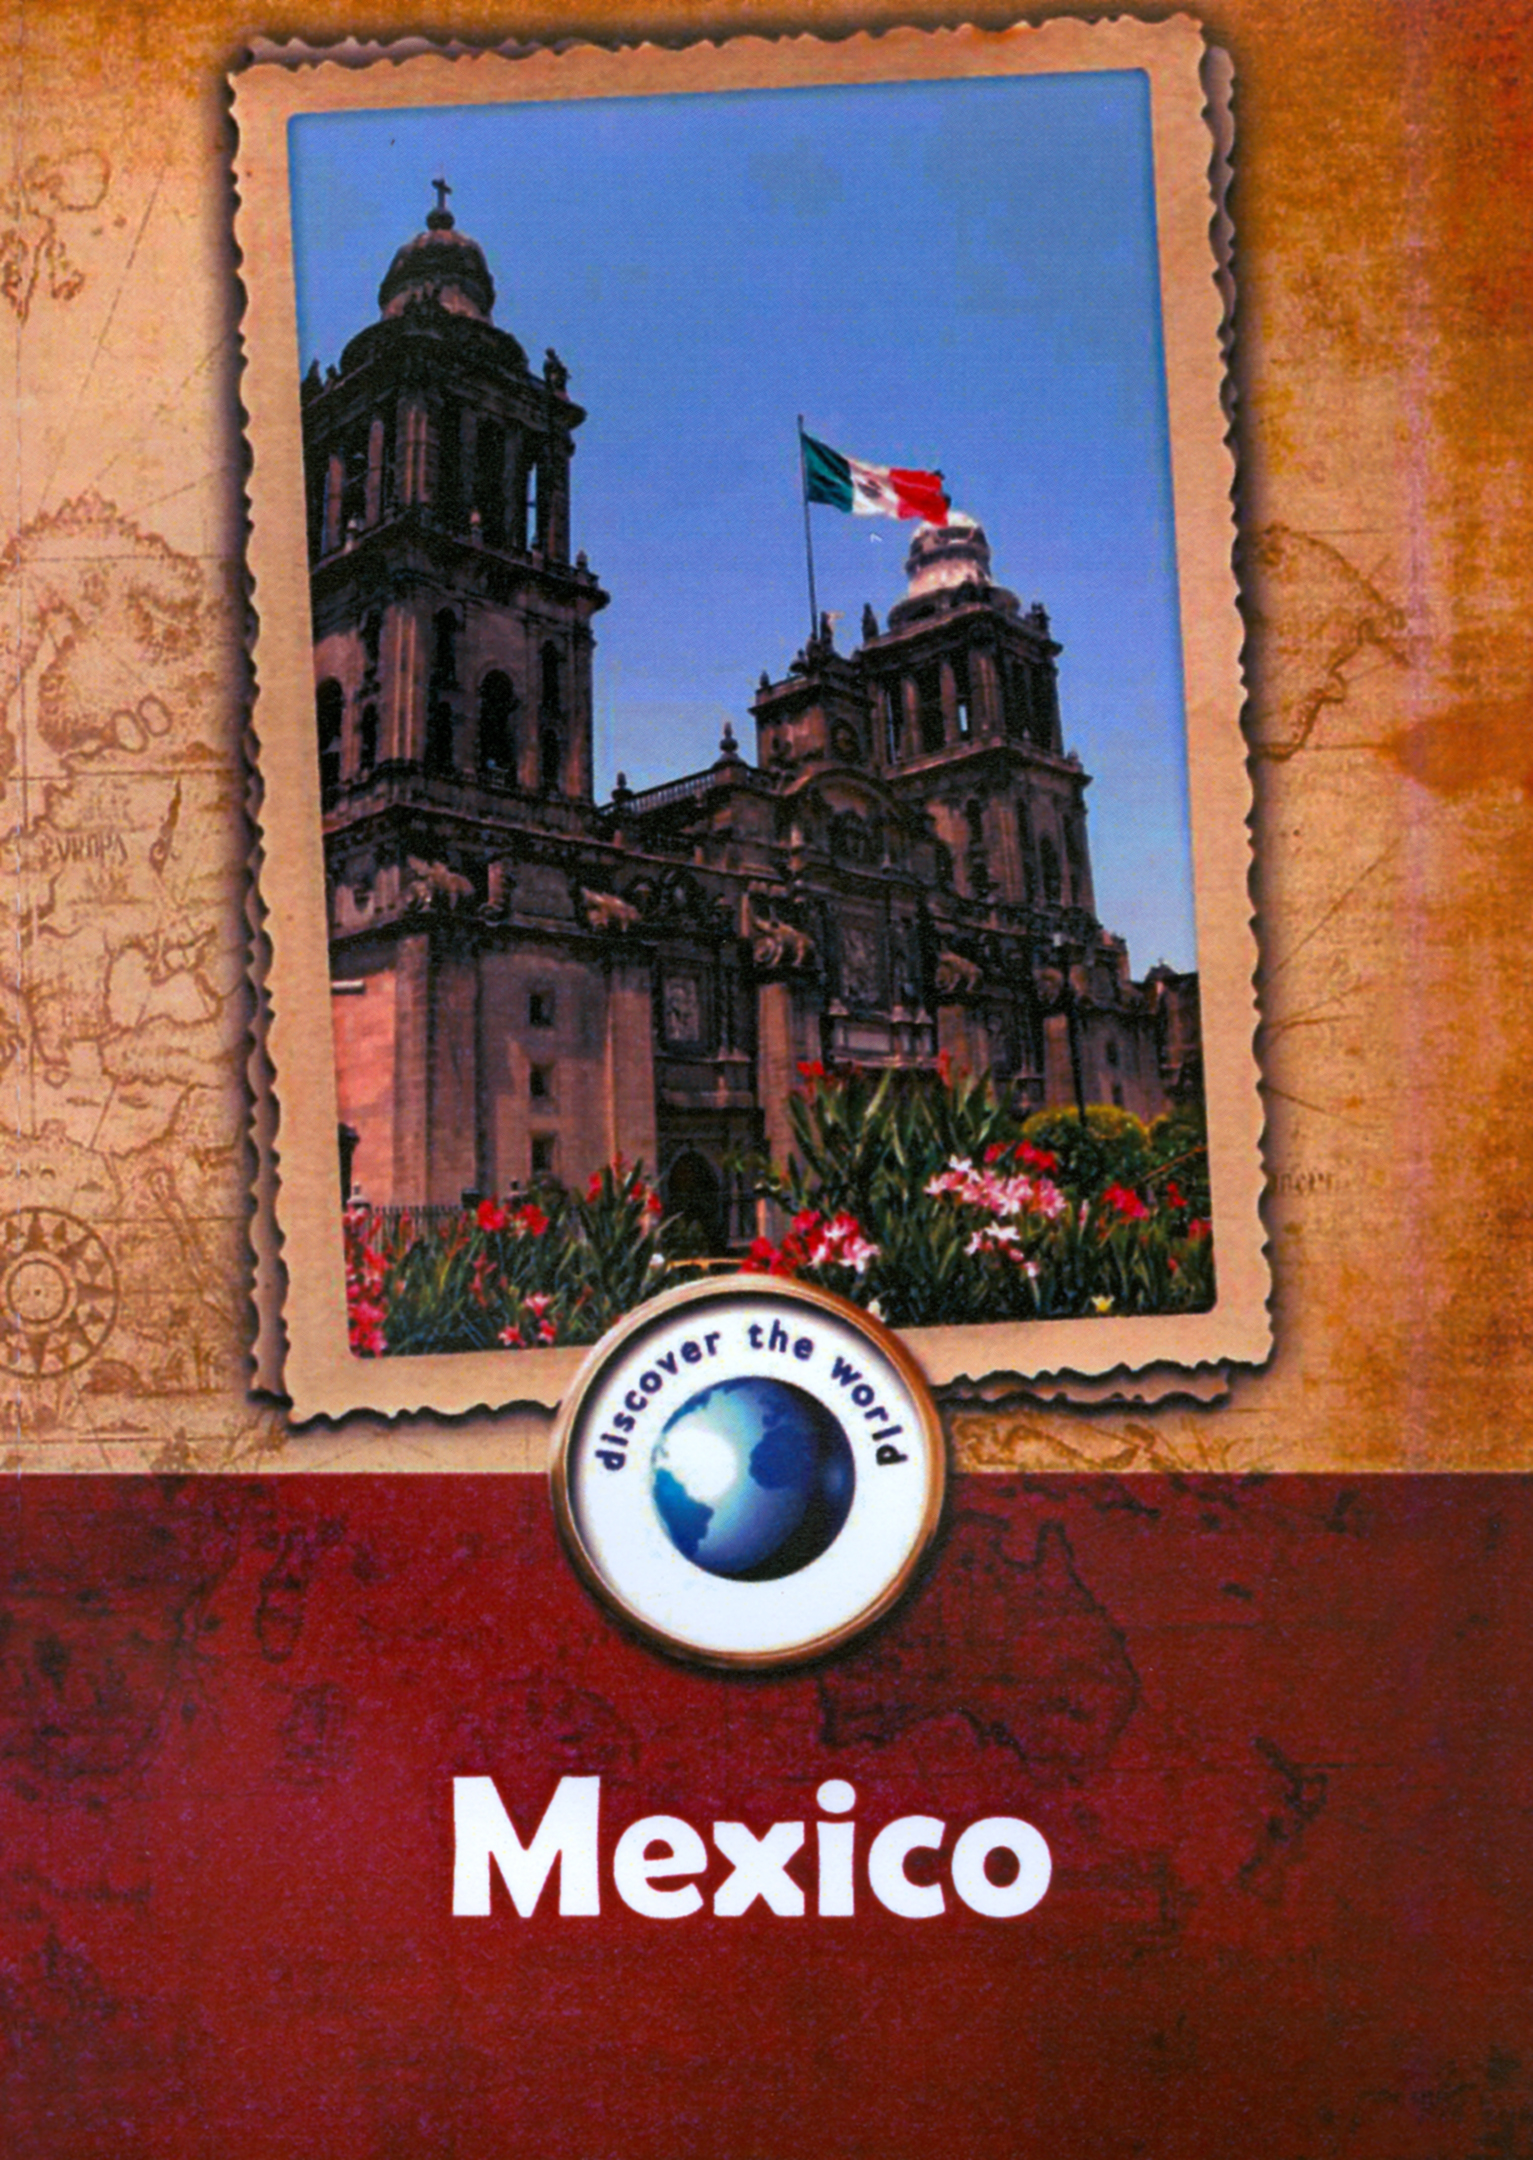 Discover the World: Mexico